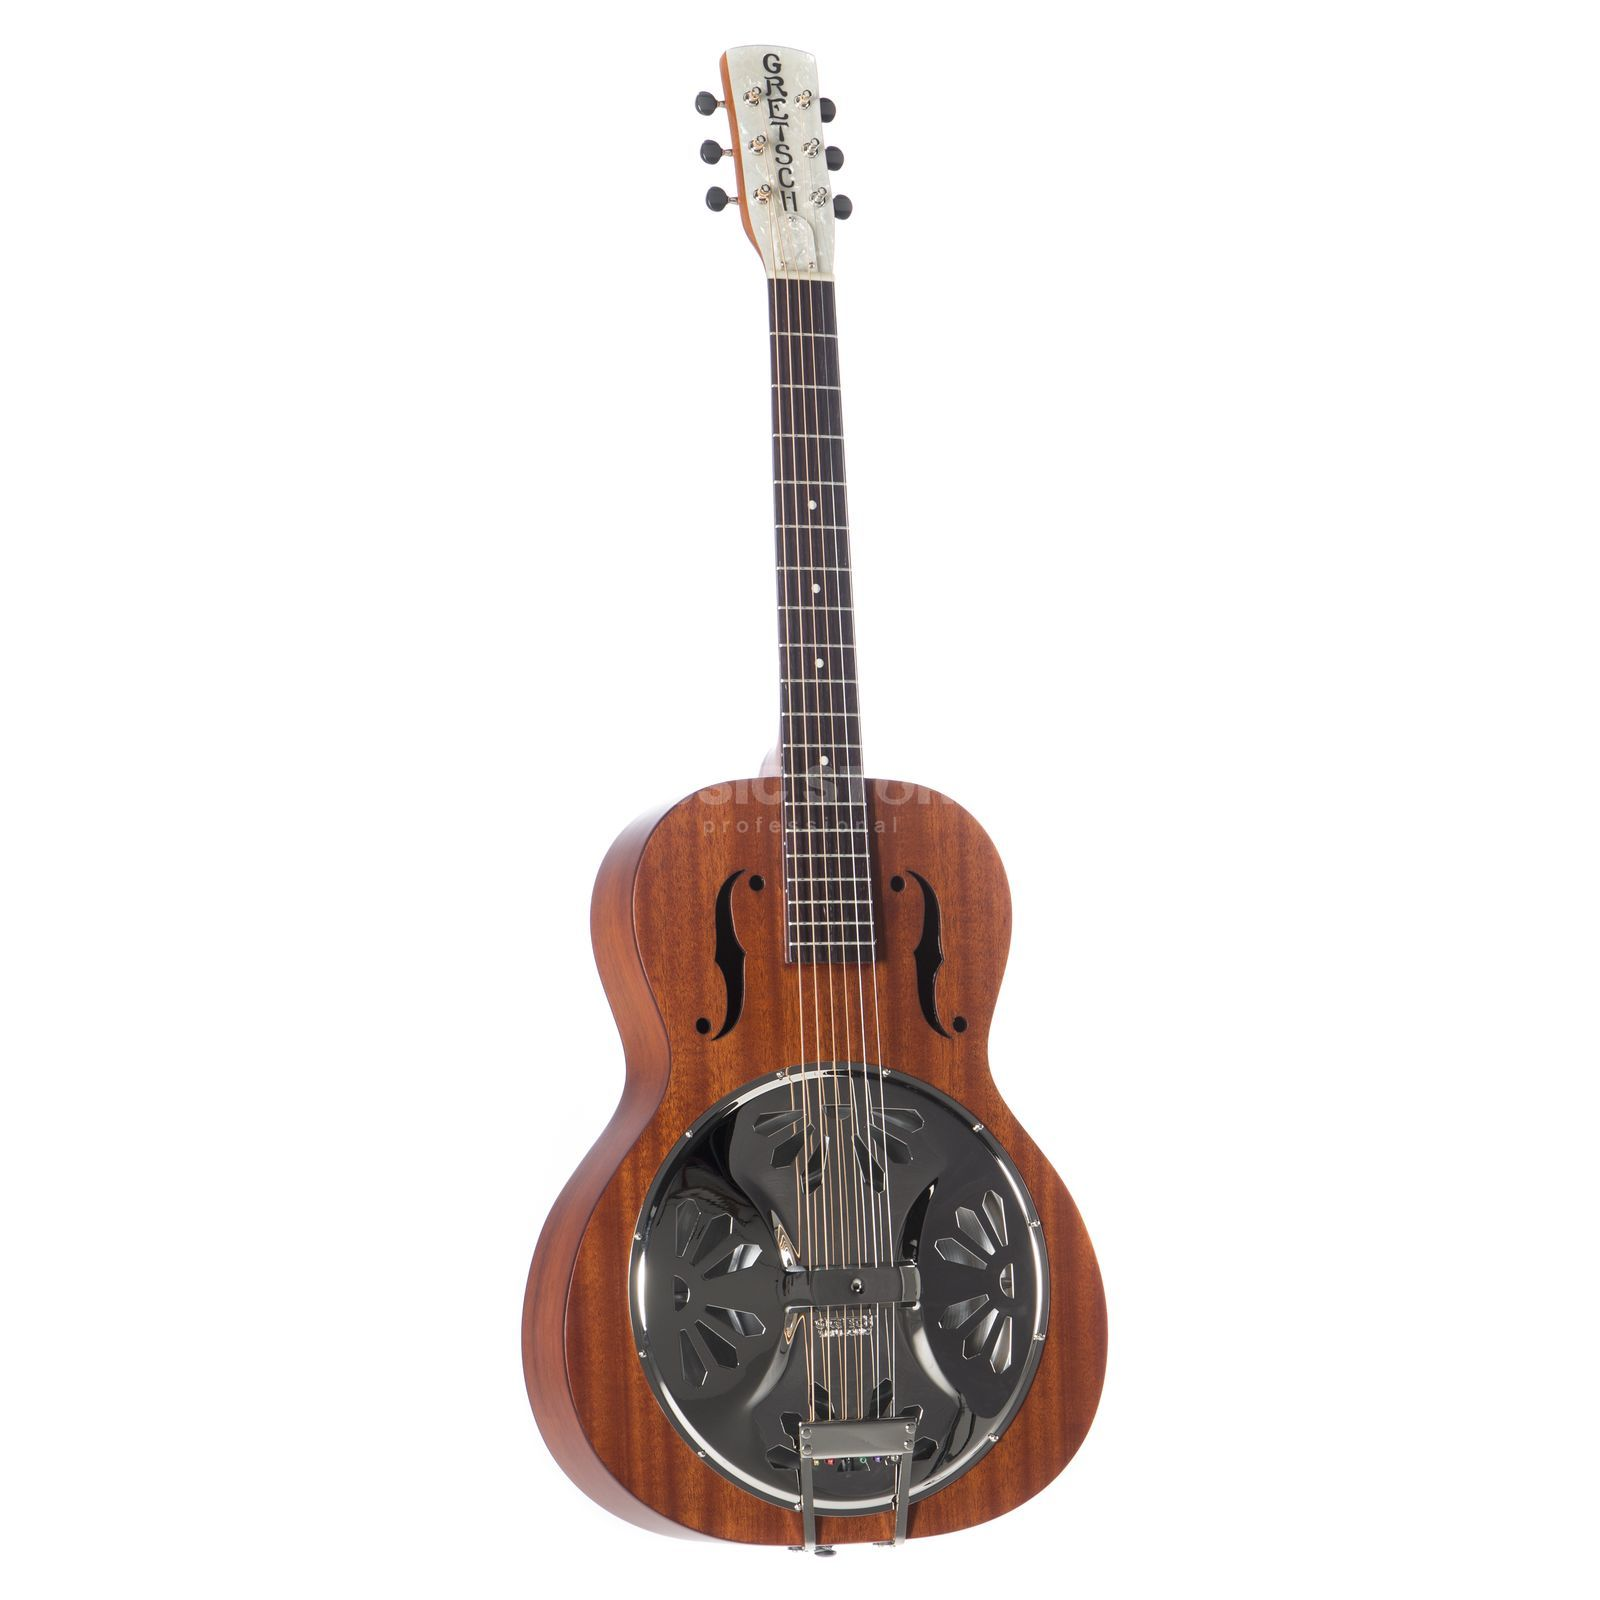 Gretsch G9200 Boxcar Round Neck Product Image